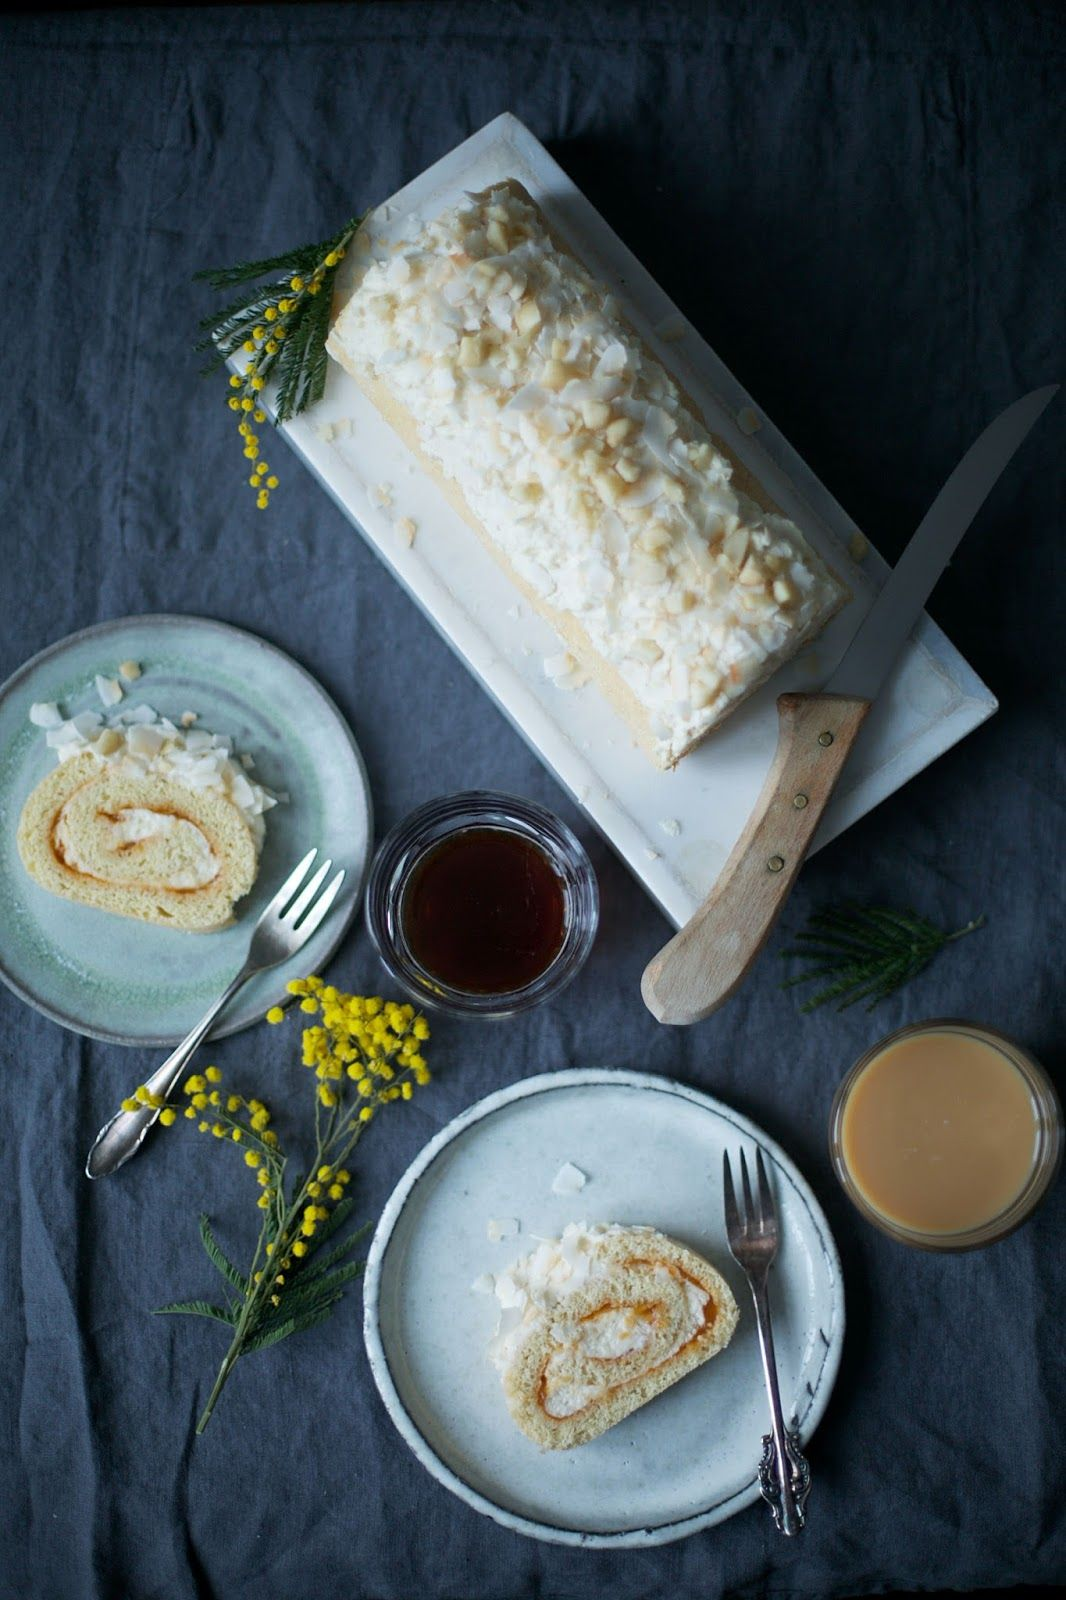 Gluten-free Macadamia-Apricot Swiss Roll with Coconut Flakes